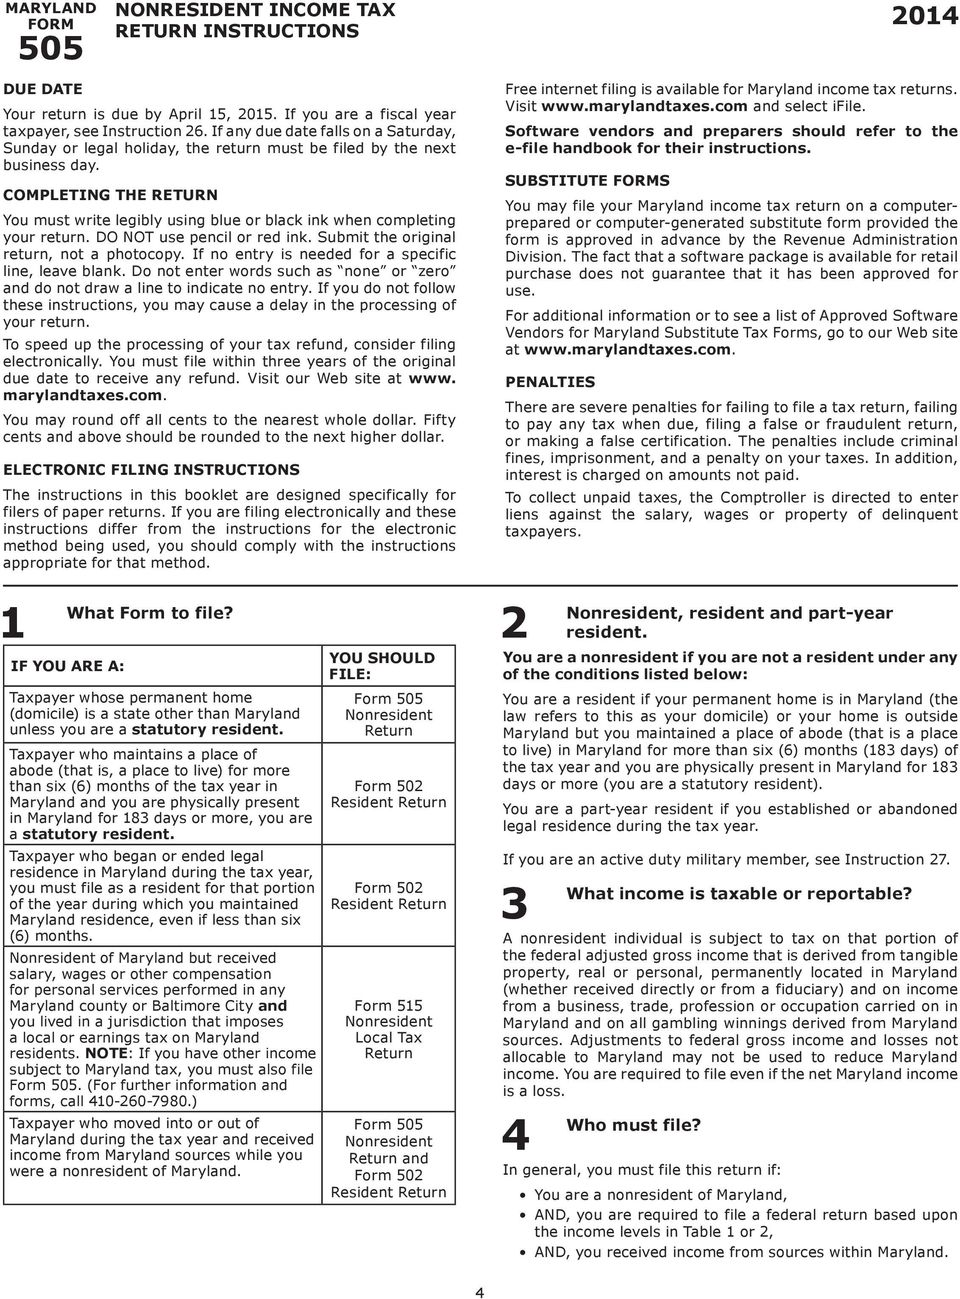 MARYLAND NONRESIDENT TAX FORMS & INSTRUCTIONS  For filing